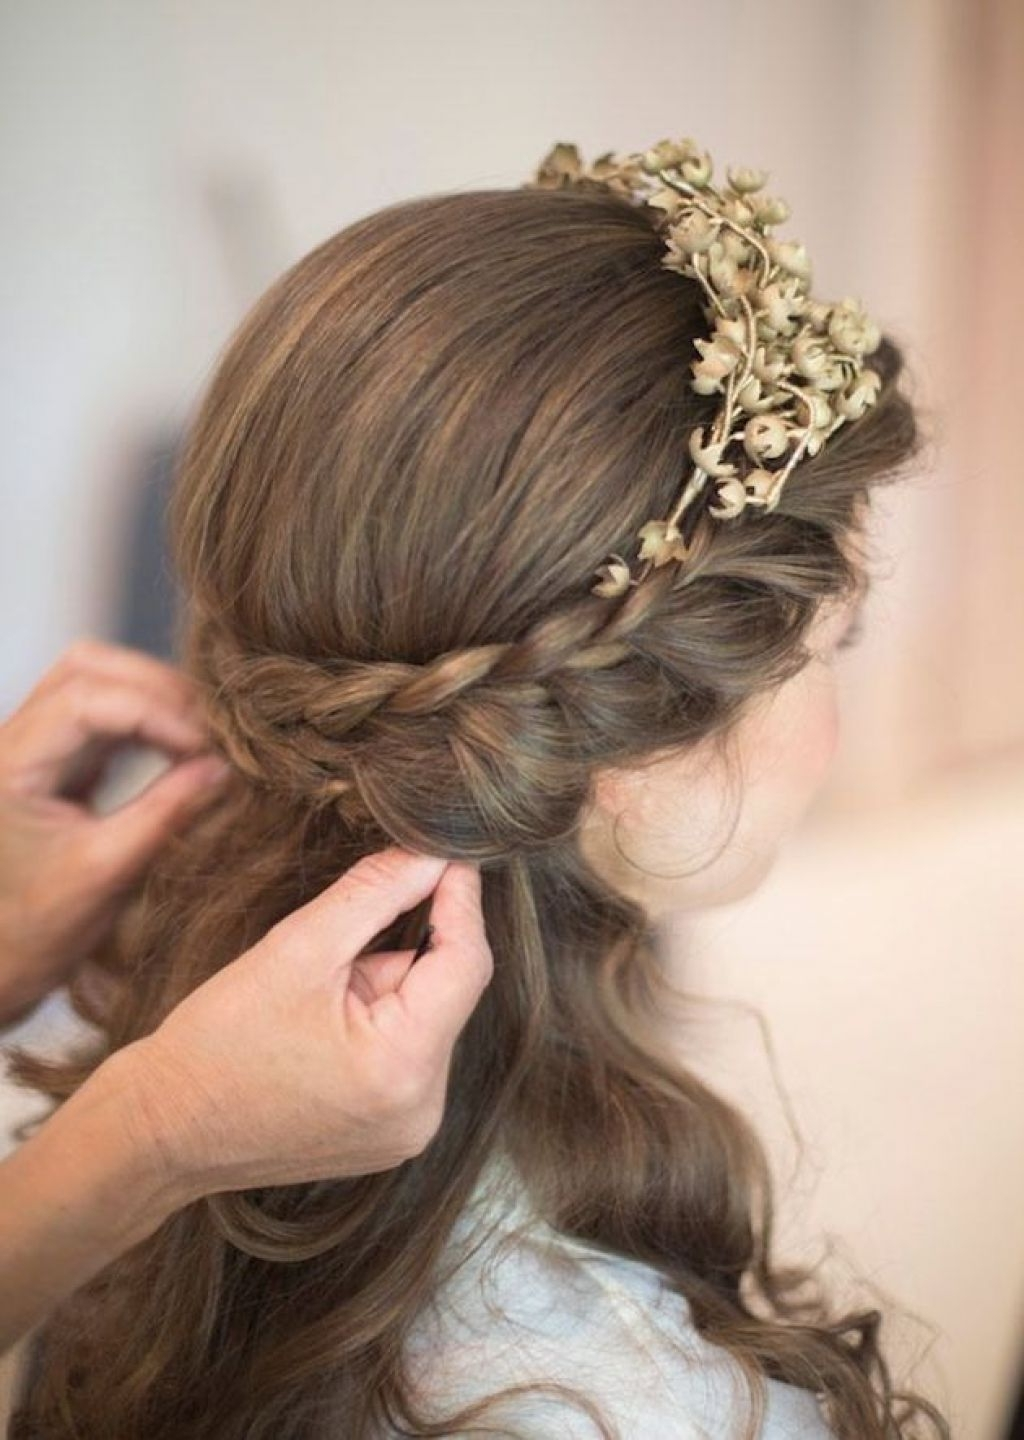 Stunning Wedding Hairstyles For Medium Length Hair Half Up Down Intended For Famous Wedding Hairstyles For Short Length Hair Down (View 10 of 15)